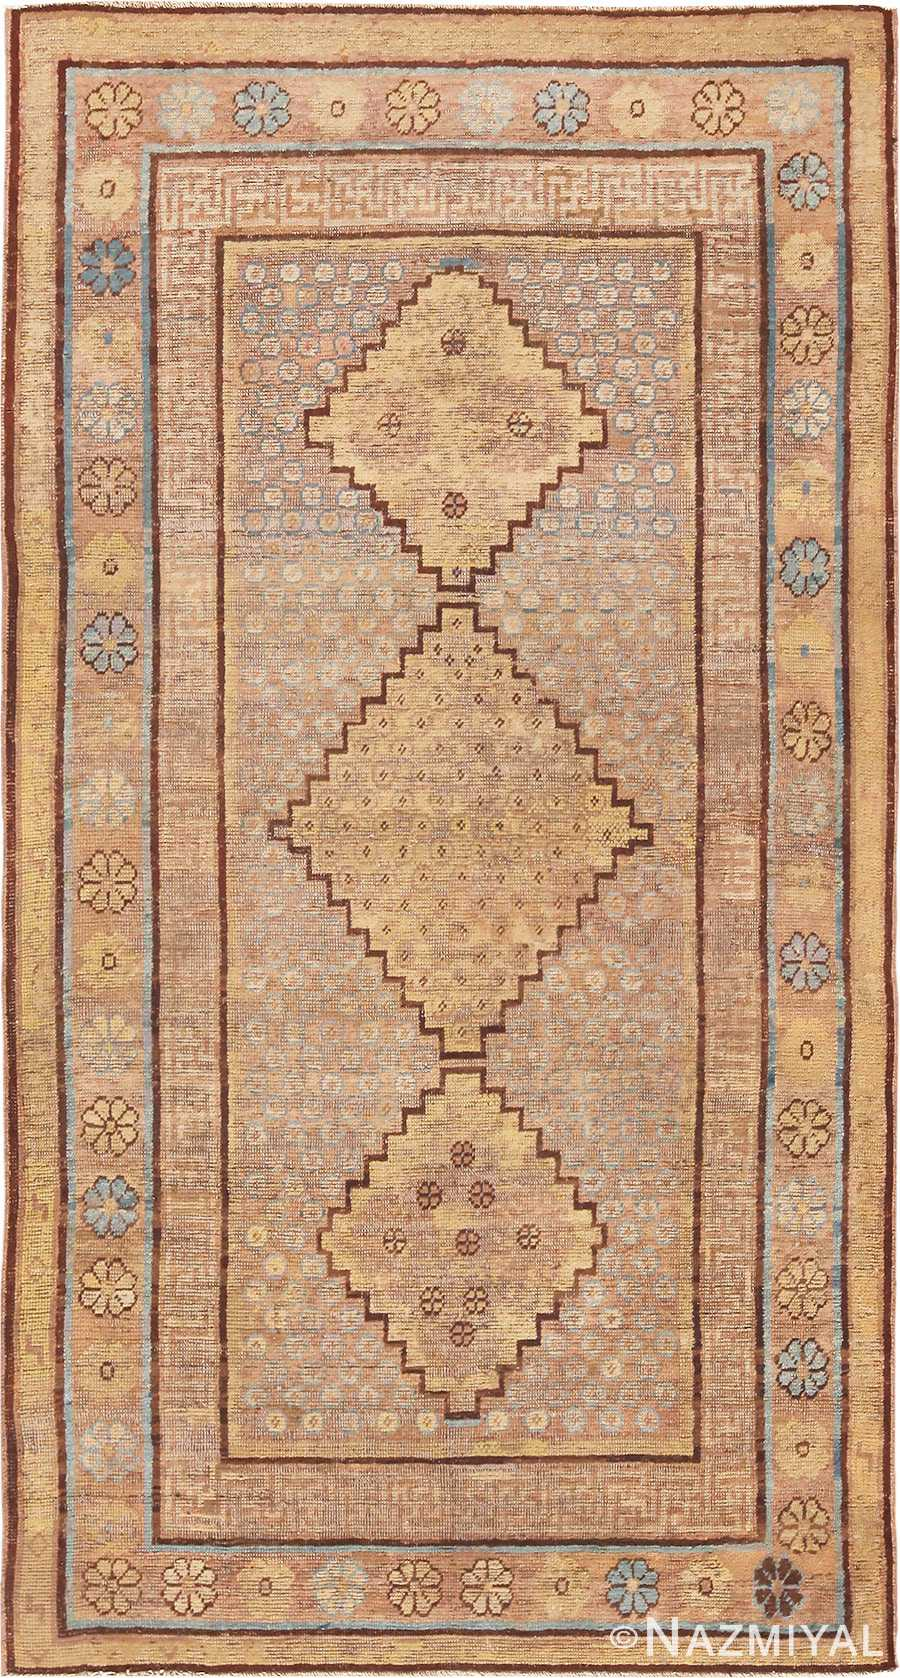 Small Earth Tone Tribal Animal Pelt Antique Khotan Rug #49977 Nazmiyal